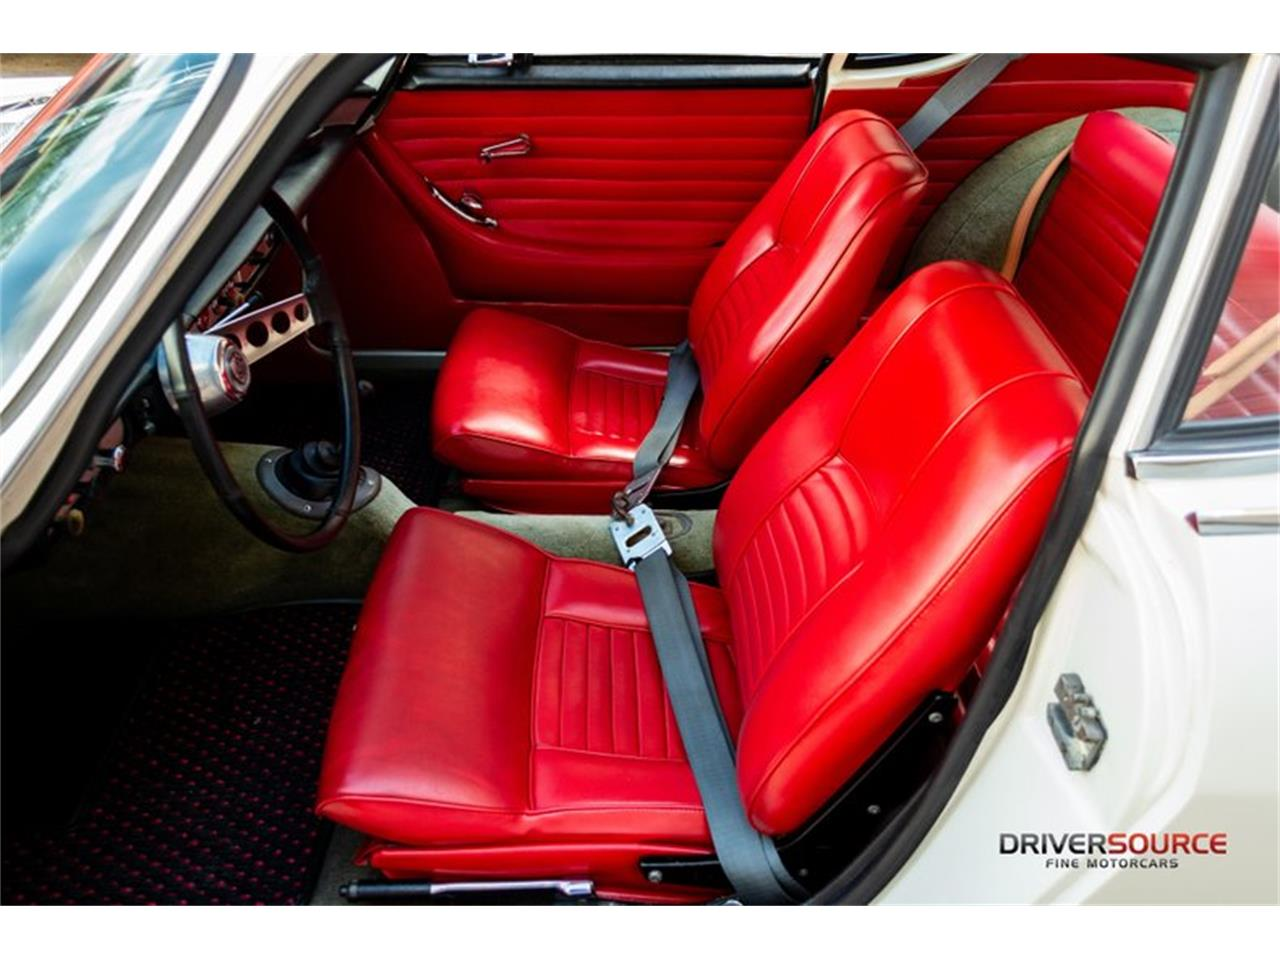 Large Picture of Classic '64 P1800E - $49,250.00 Offered by Driversource - NNM3